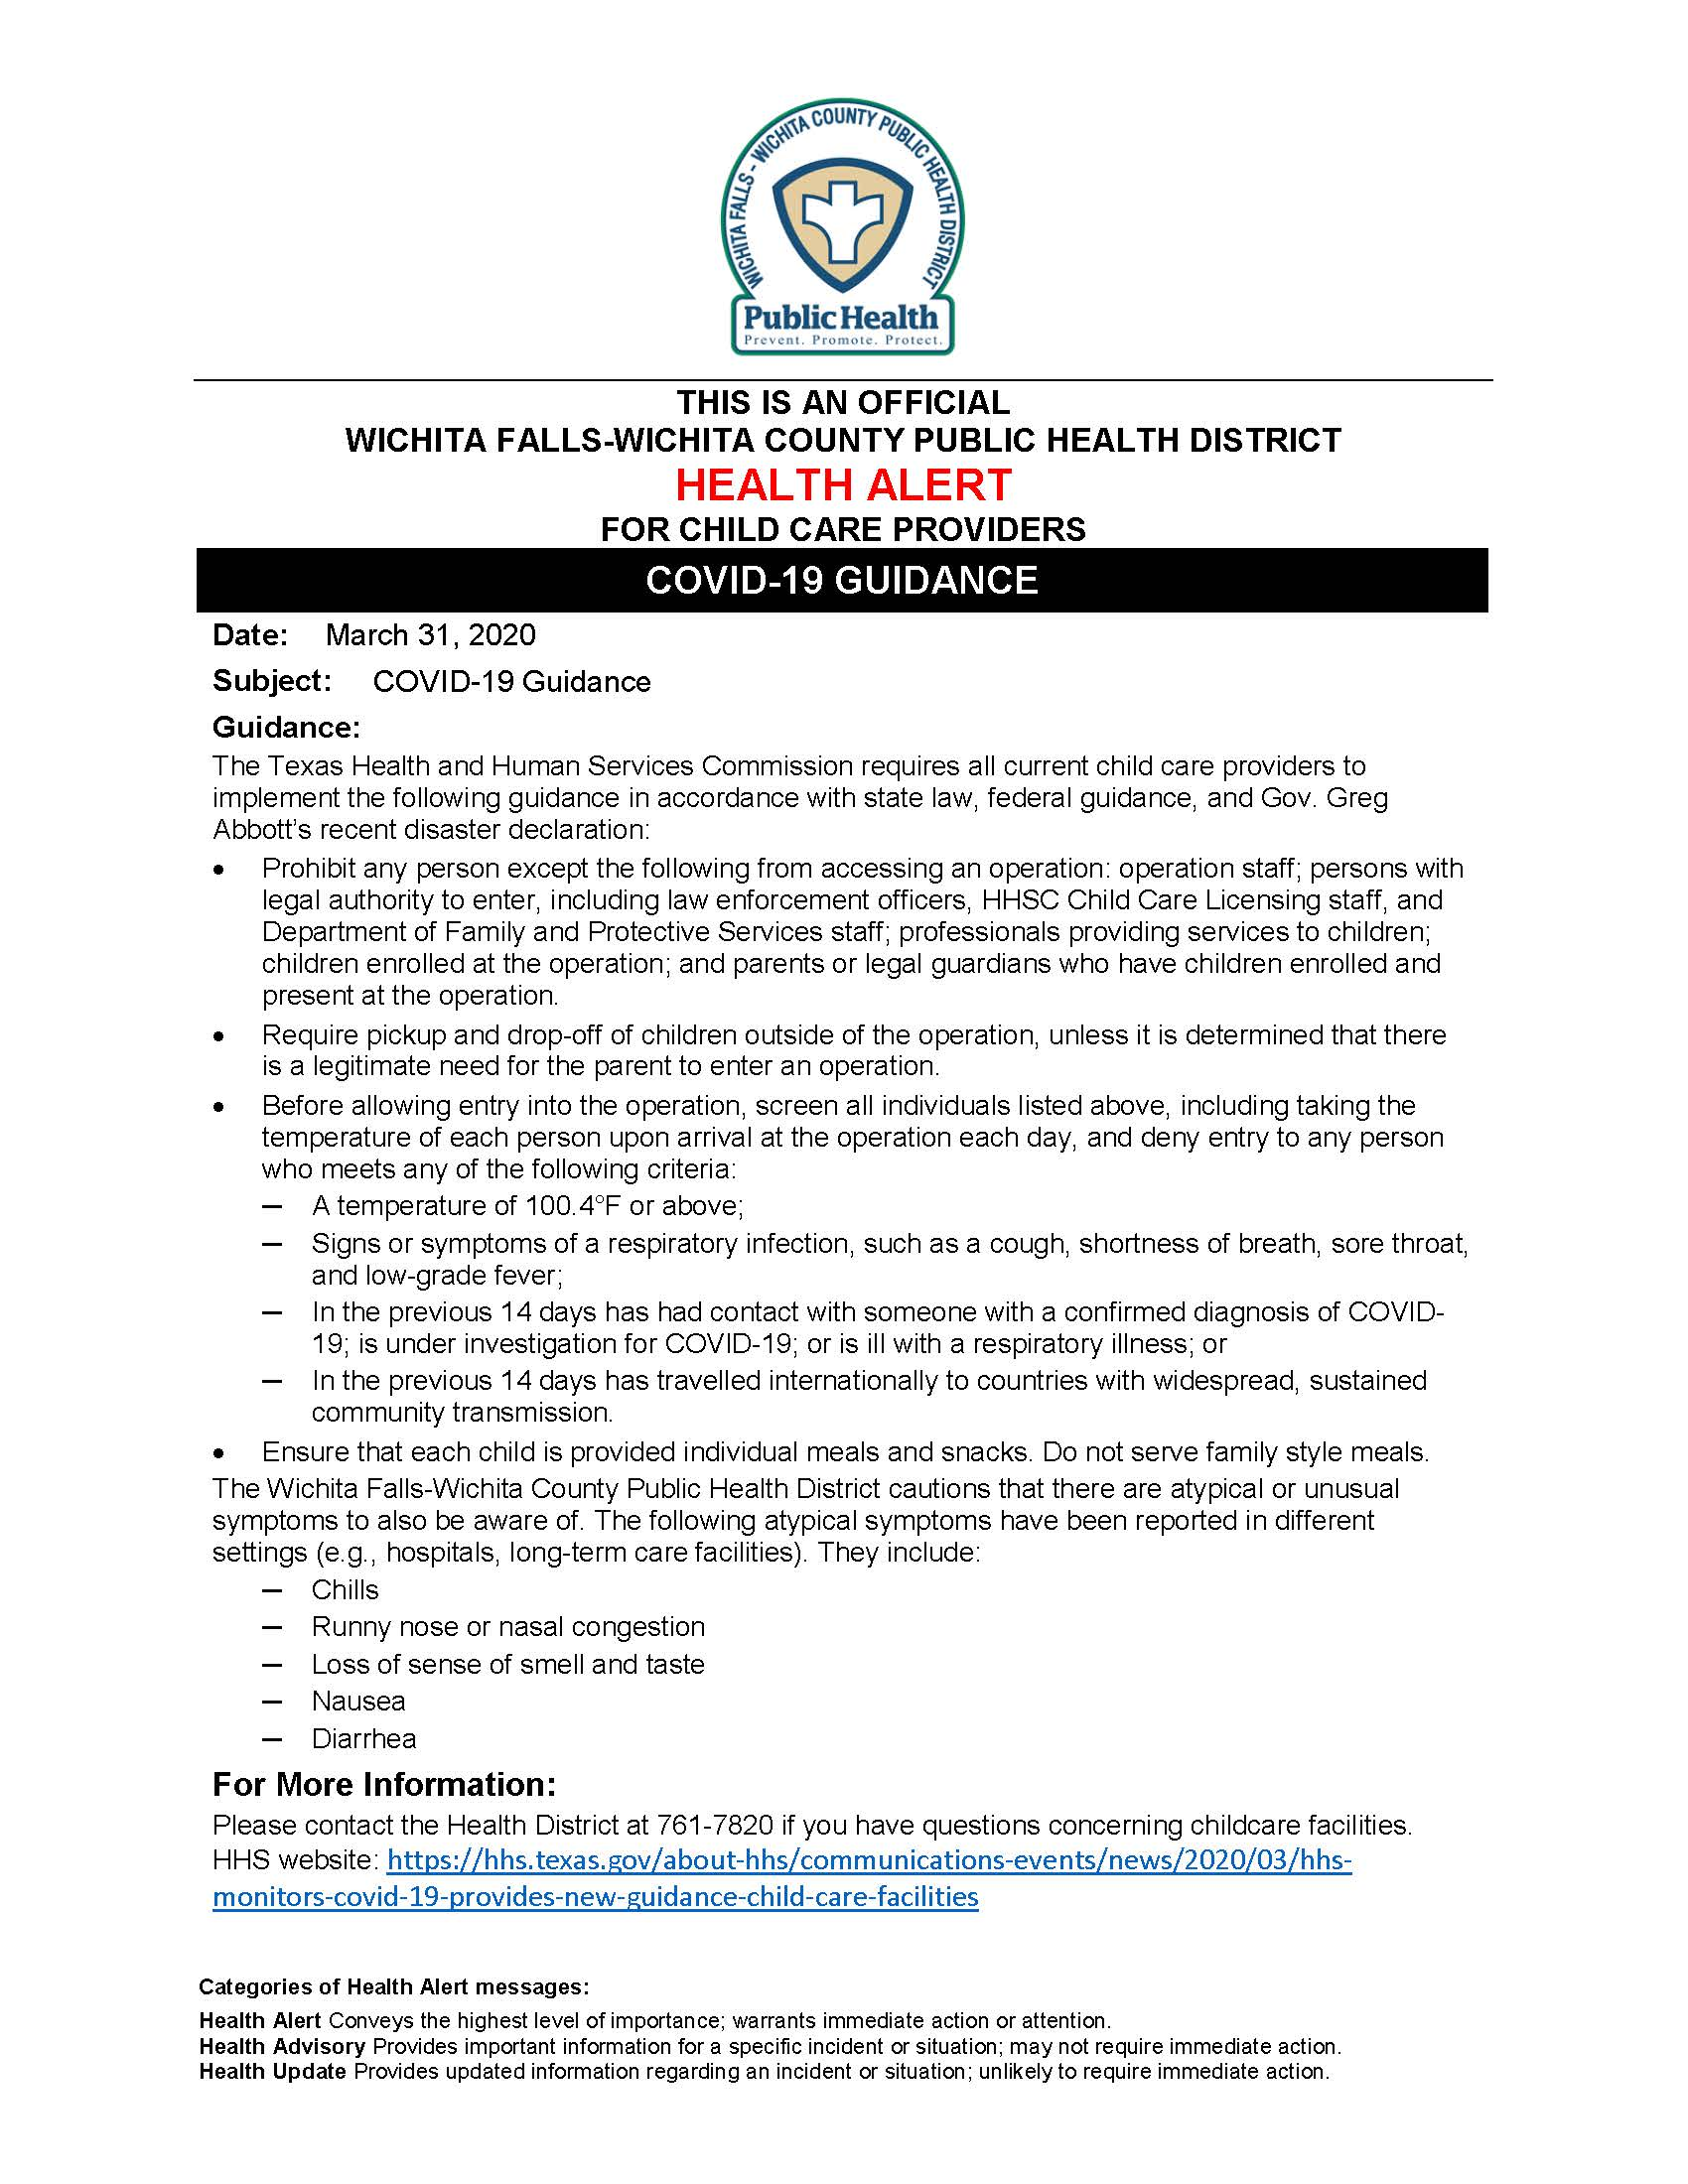 HEALTH ALERT Child Care Facilities 03.31.2020